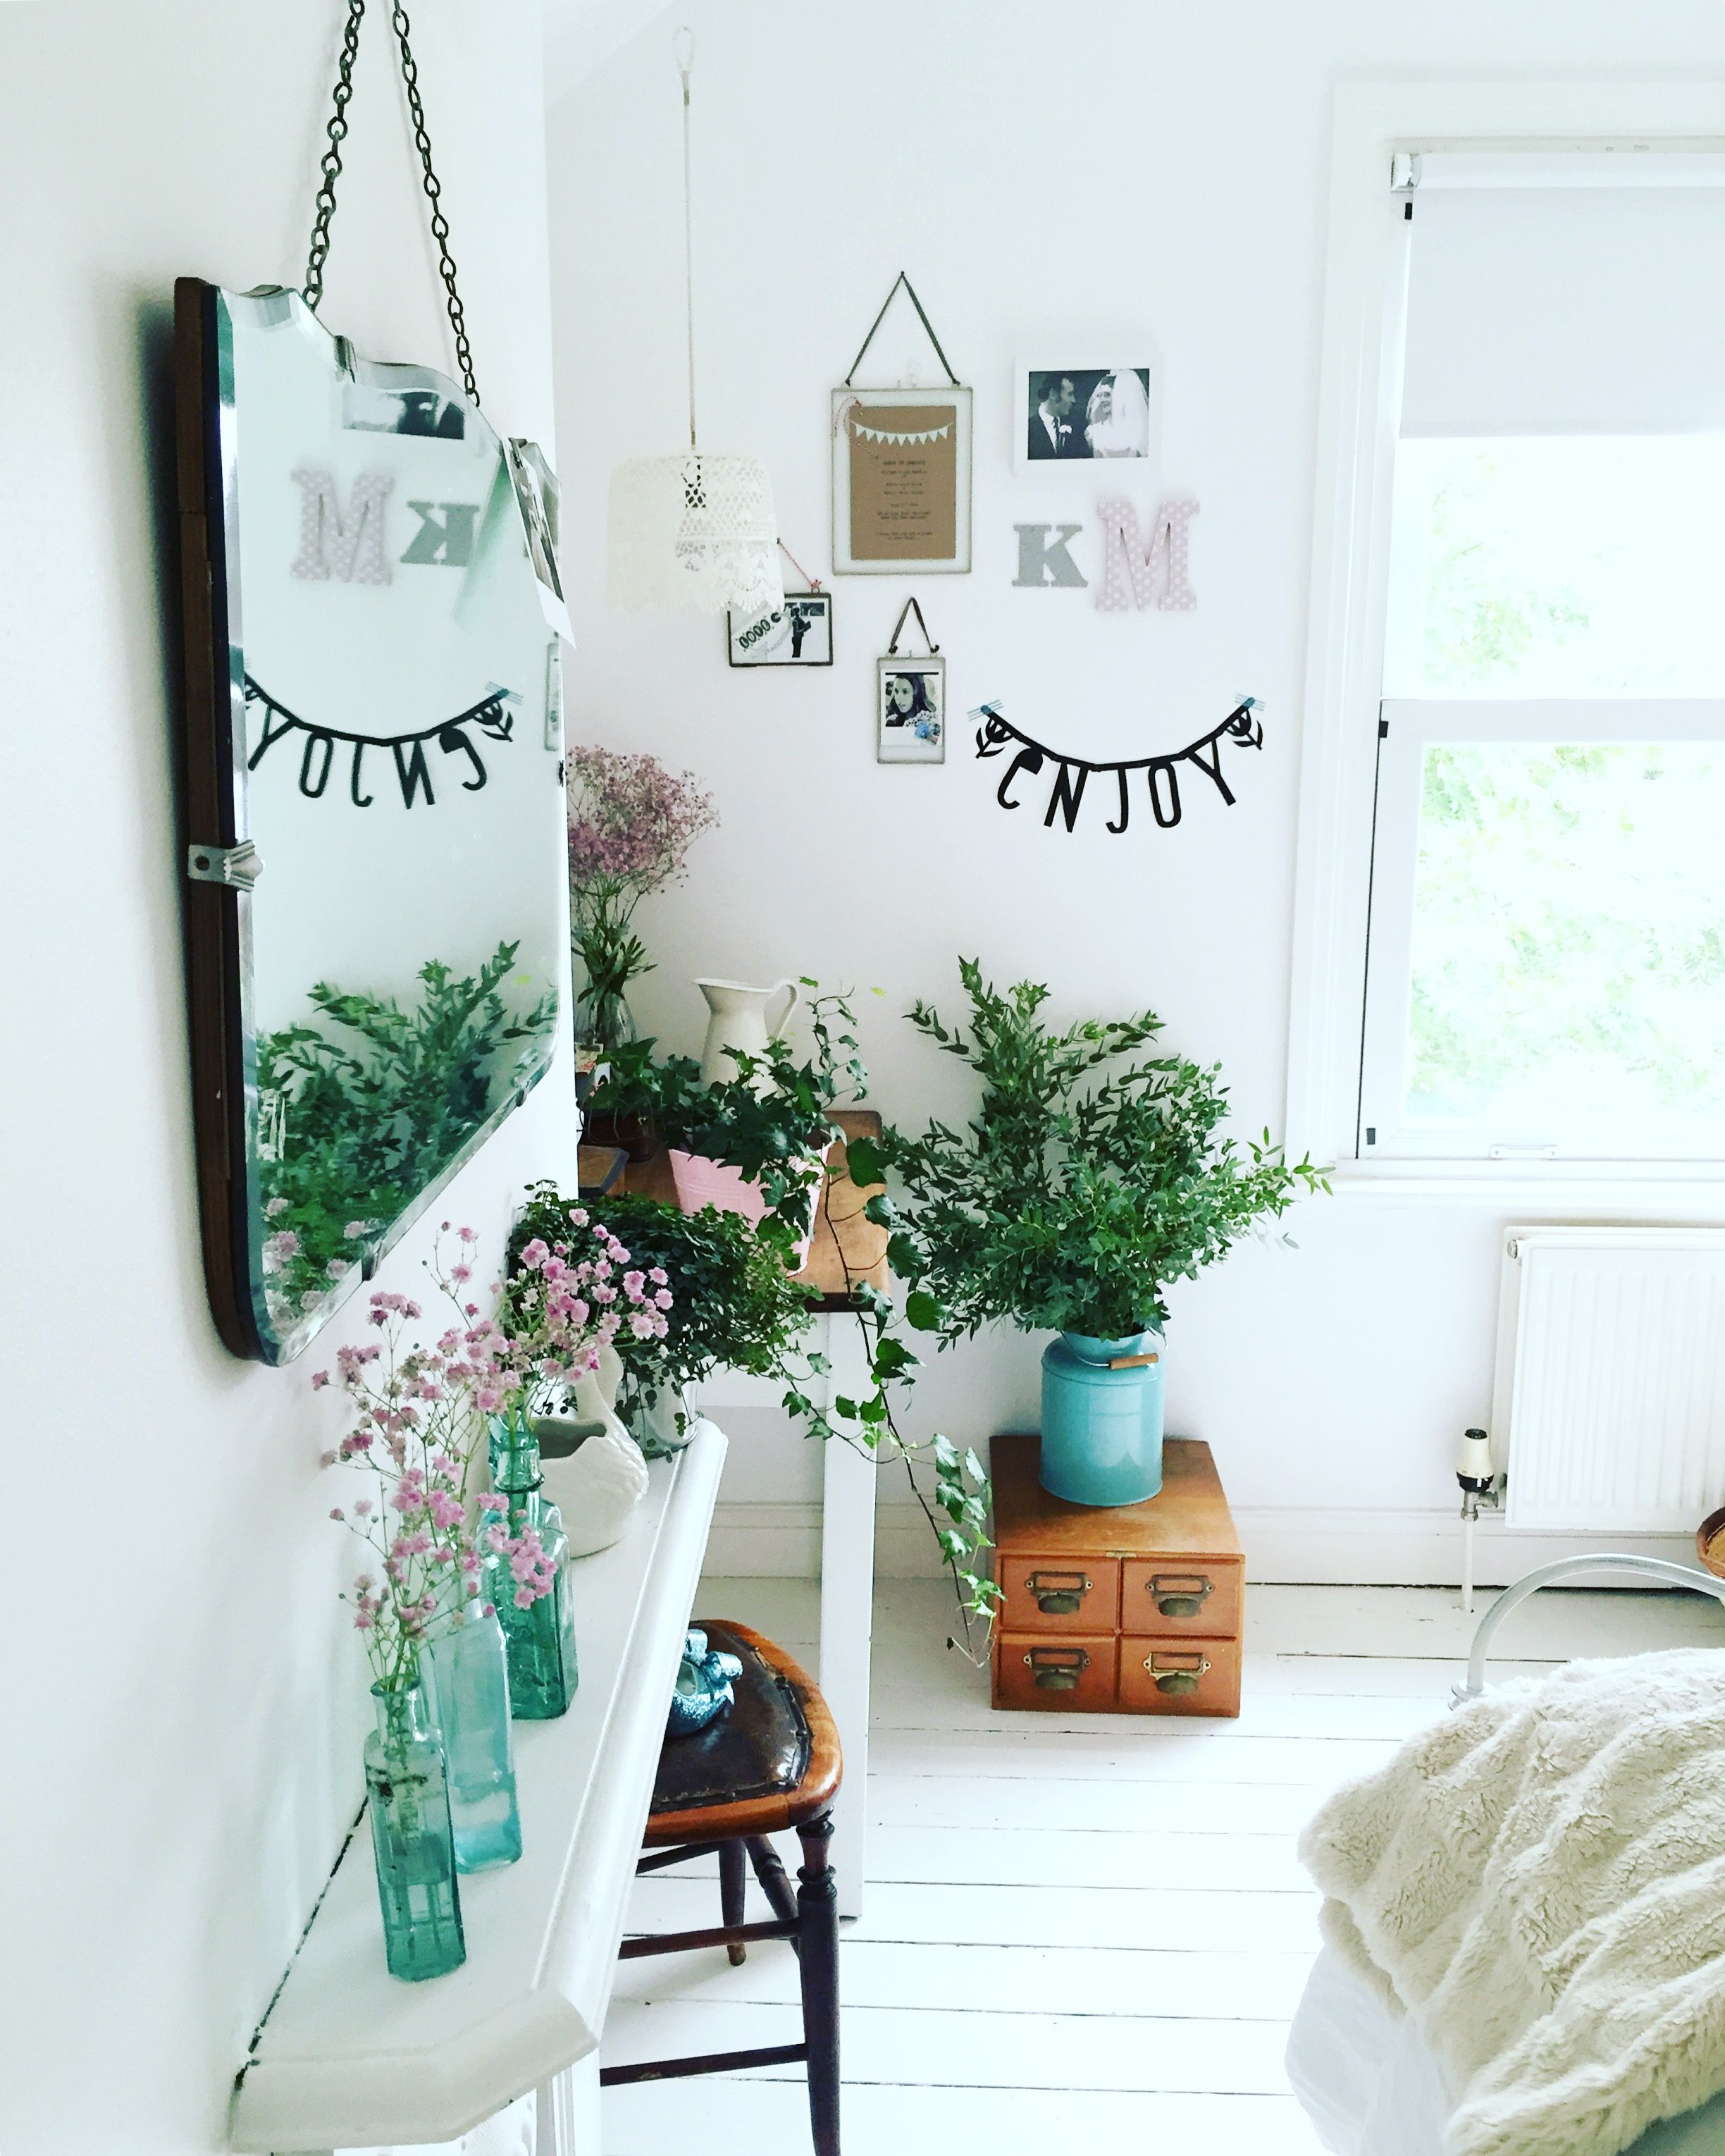 White bedroom with plants tumblr - Fun Bright Bedroom With Plants